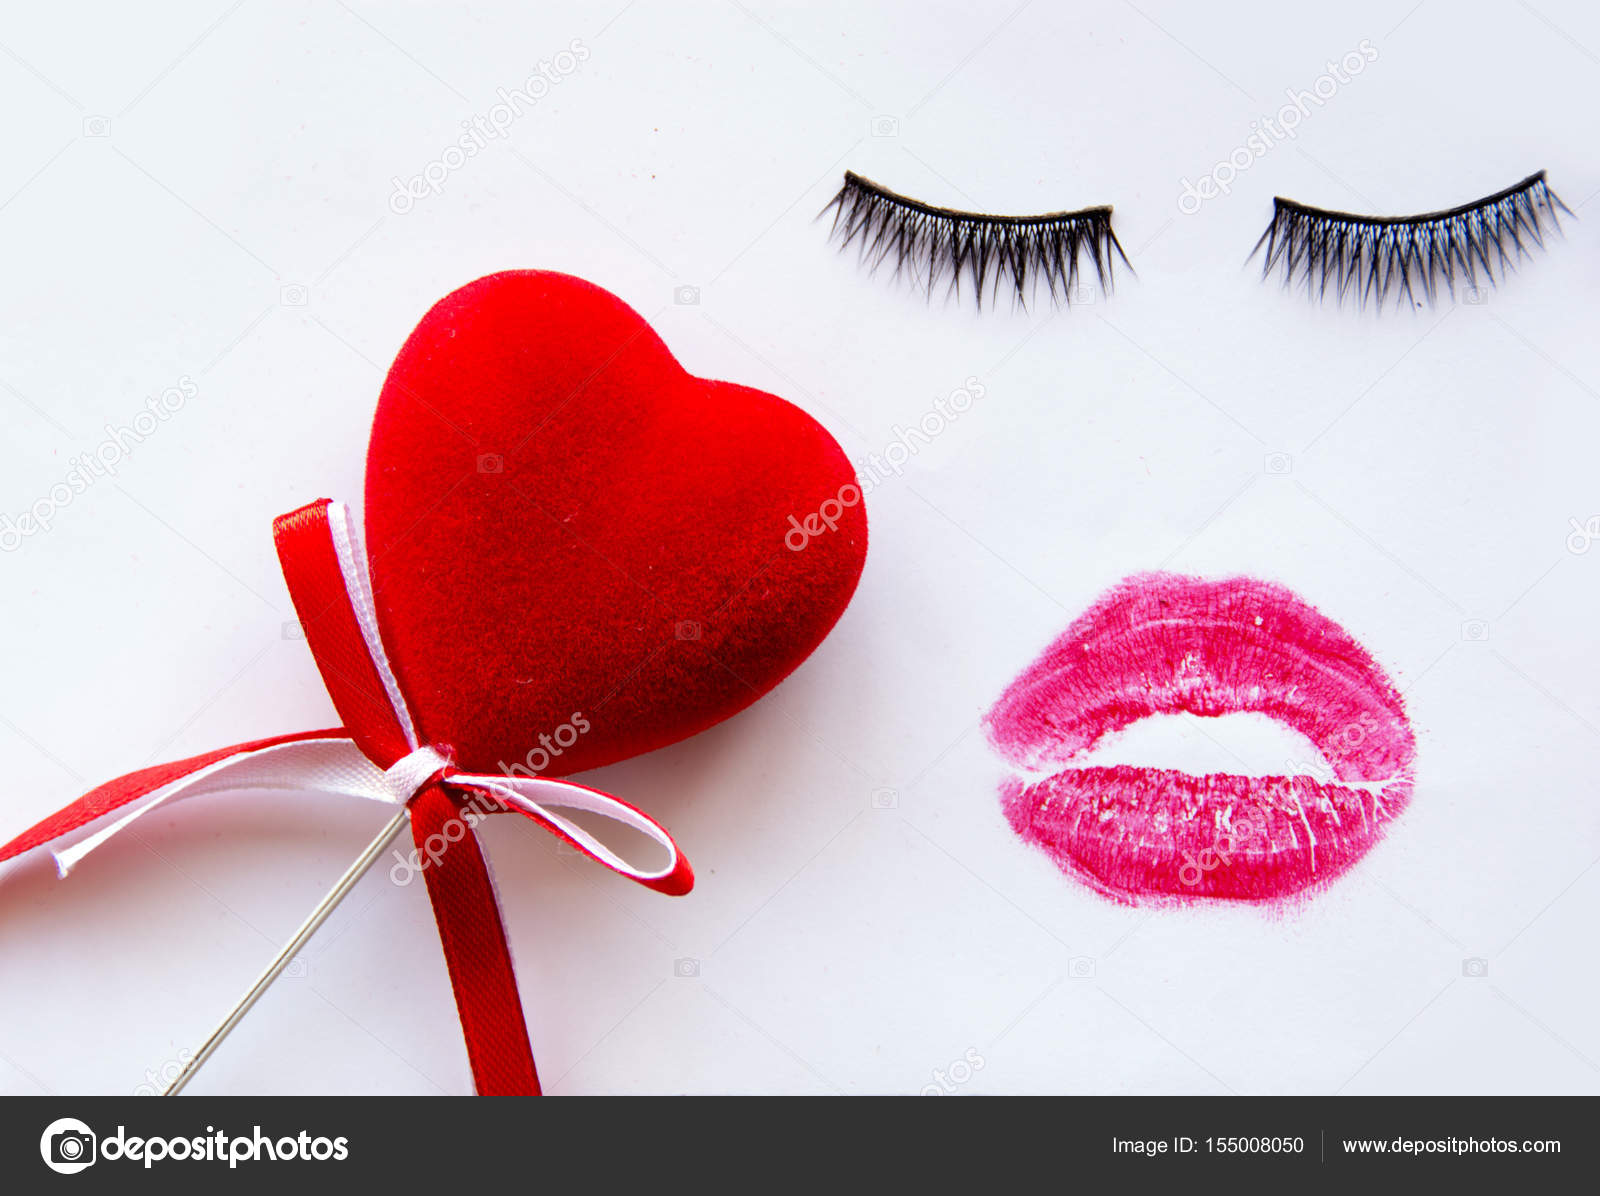 Red Heart False Eyelashes And Red Lipstick Kiss On White Background